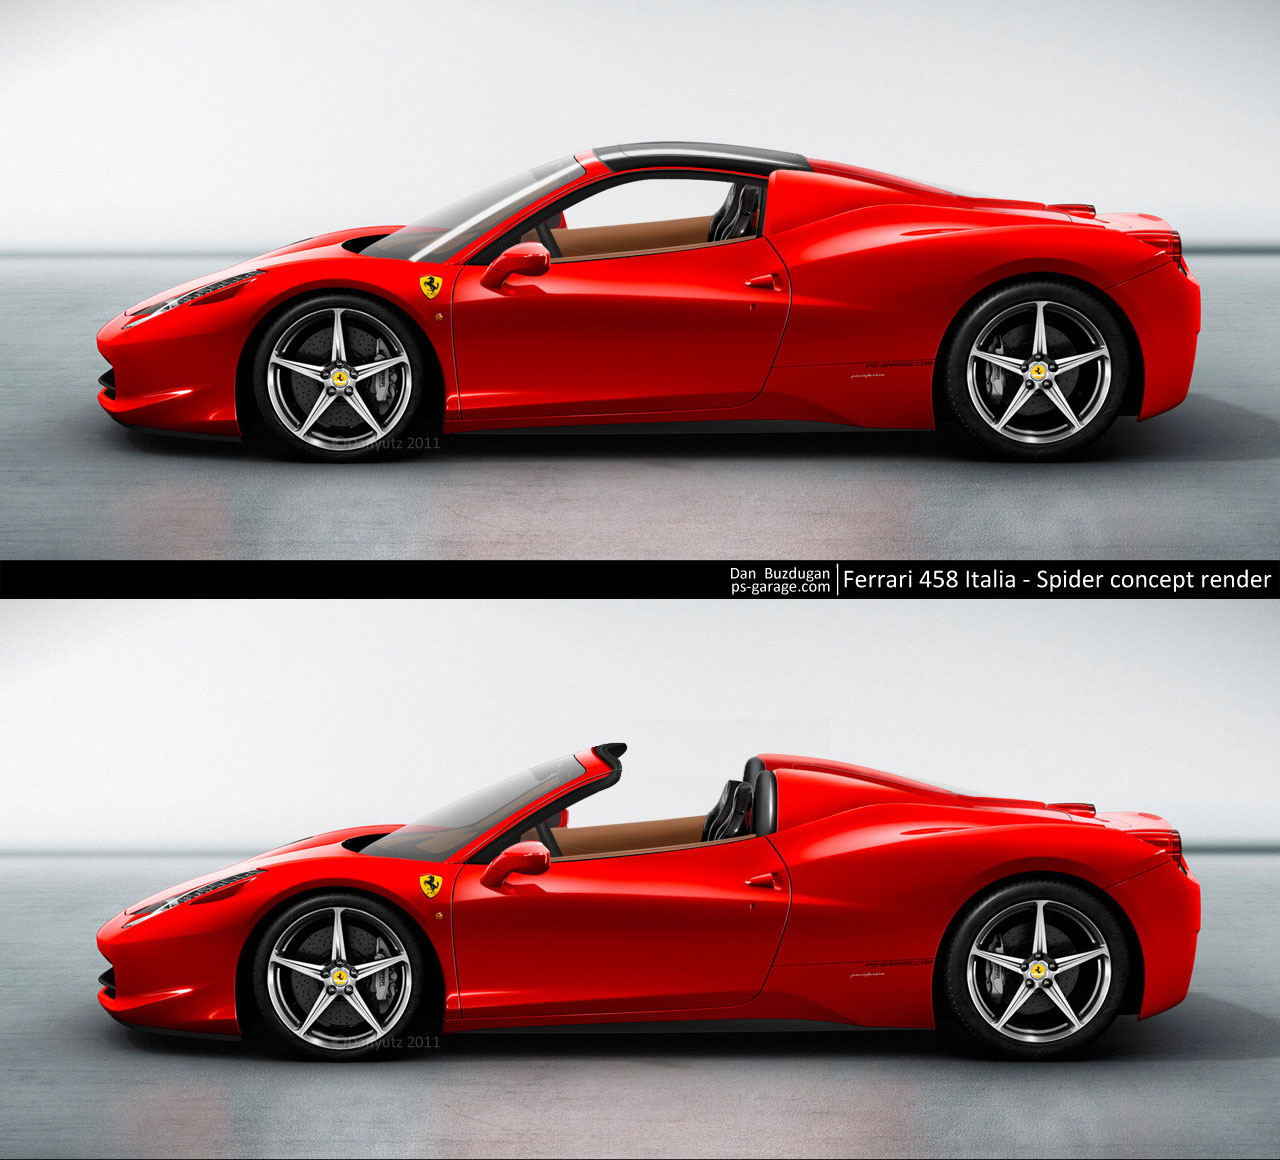 ferrari 458 italia spider by danyutz on deviantart. Black Bedroom Furniture Sets. Home Design Ideas